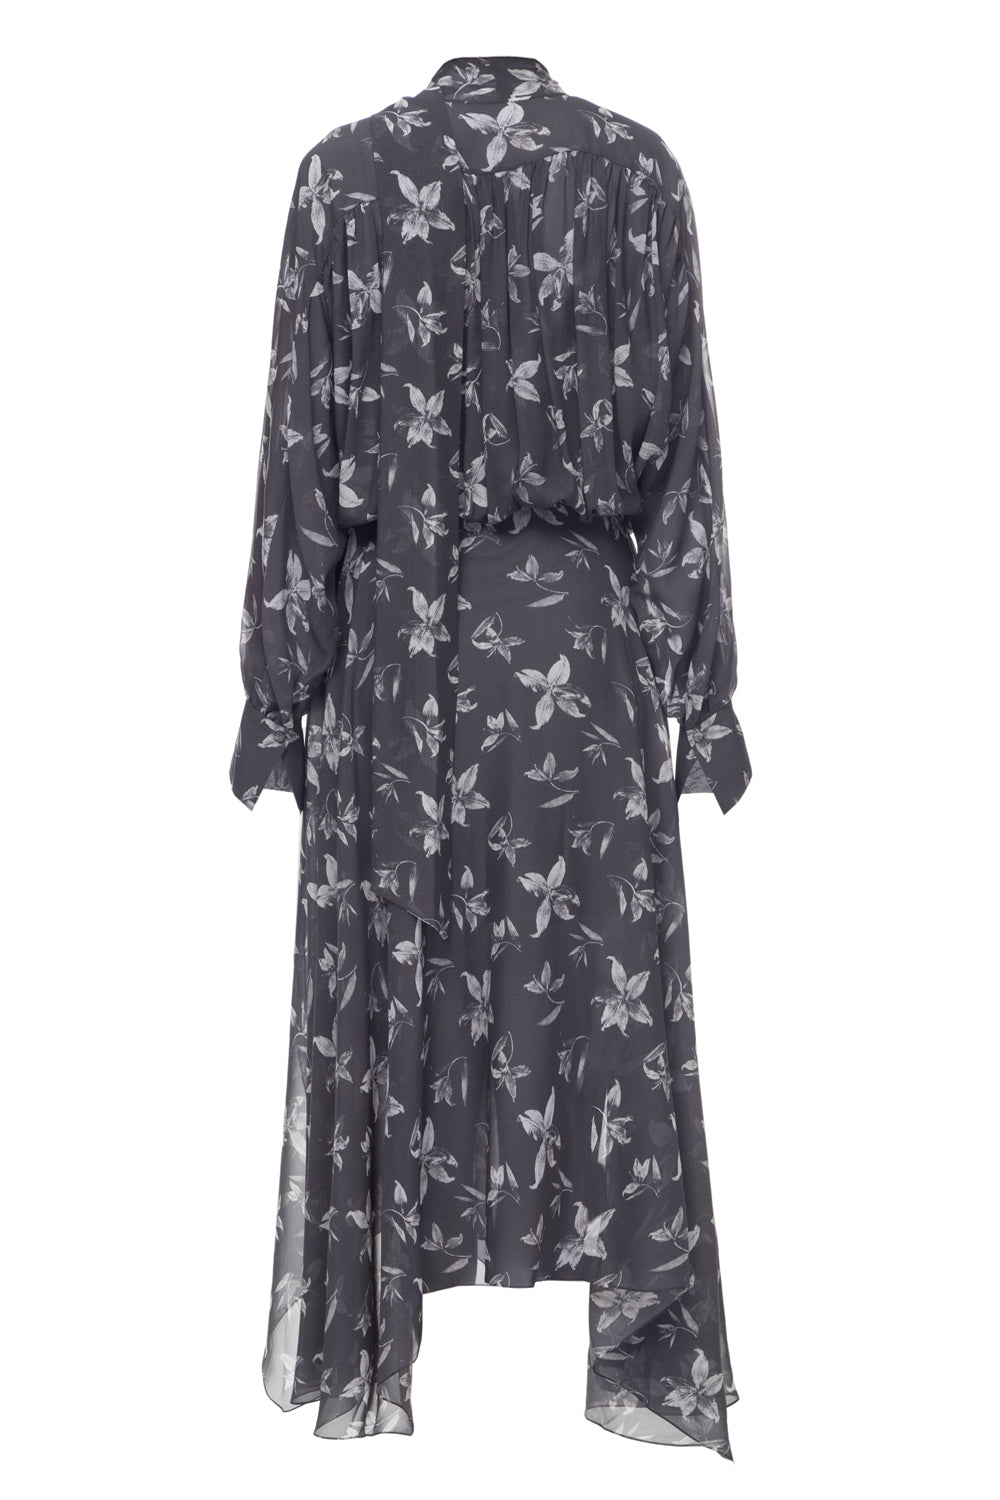 https://cdn.shopify.com/s/files/1/2704/3172/files/grey_printed_maxi_dress.mp4?26